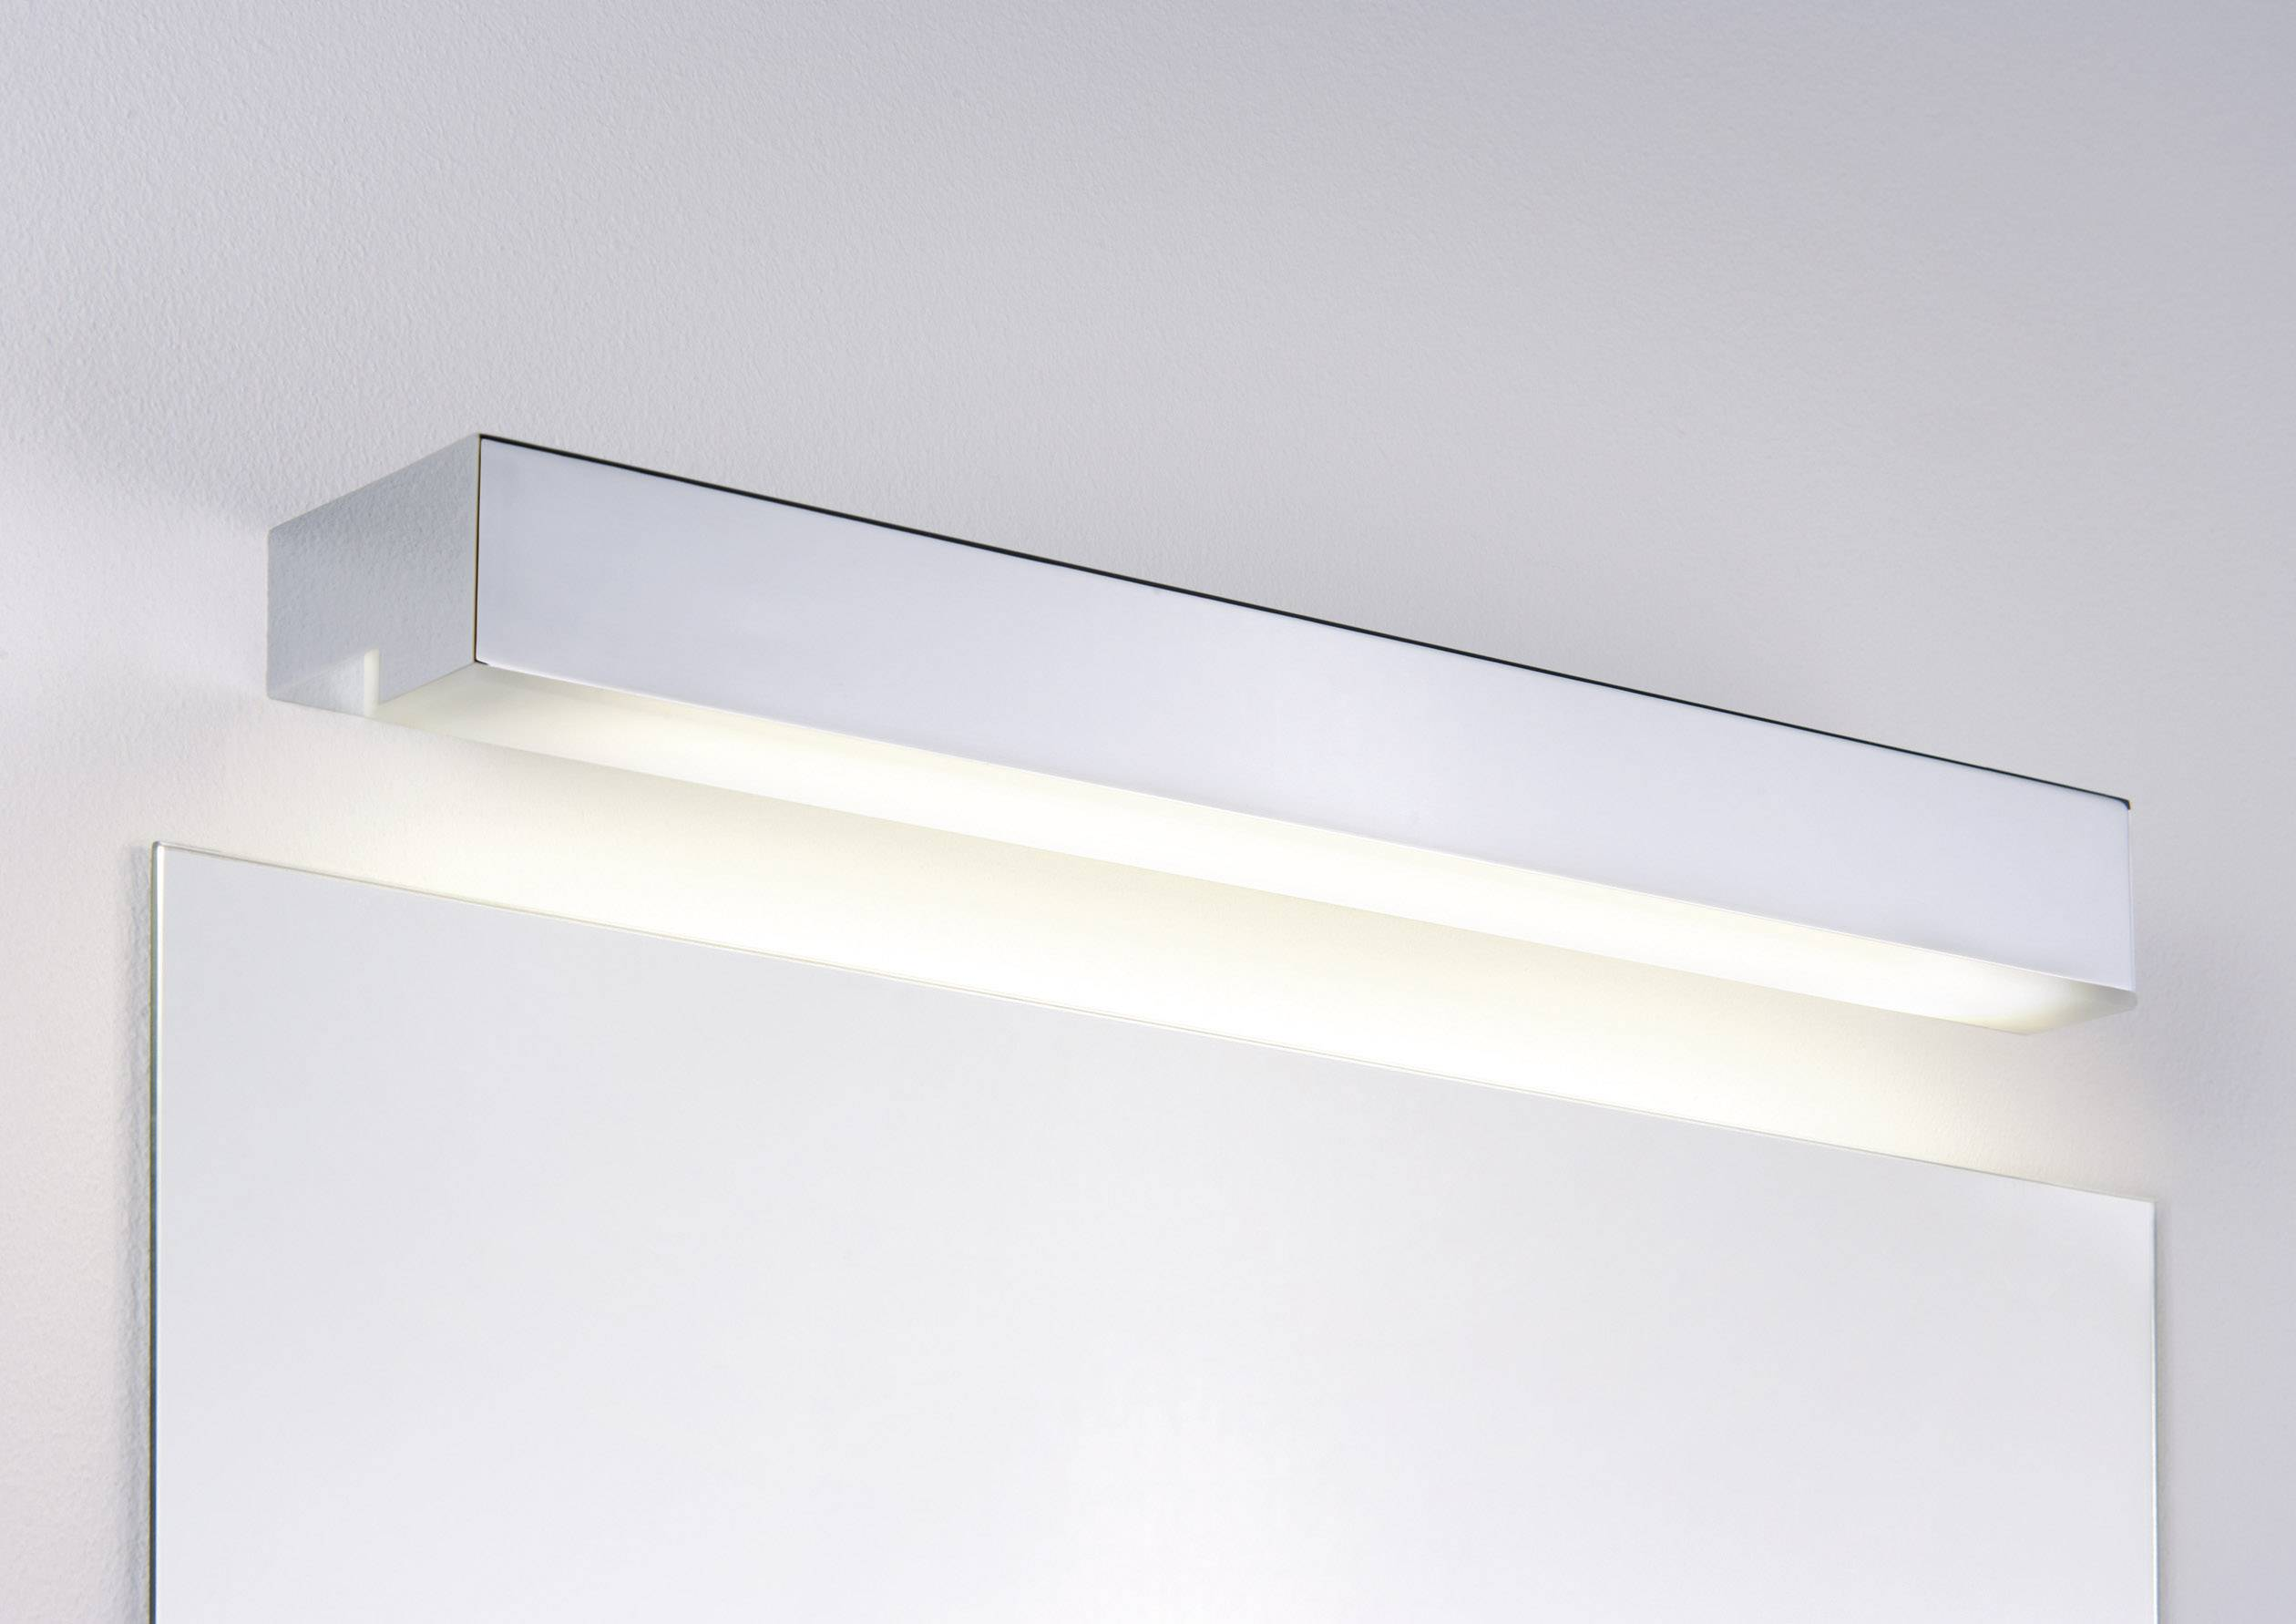 Applique murale pour wc good philips duisburg led for Carrelage adhesif salle de bain avec philips applique murale led